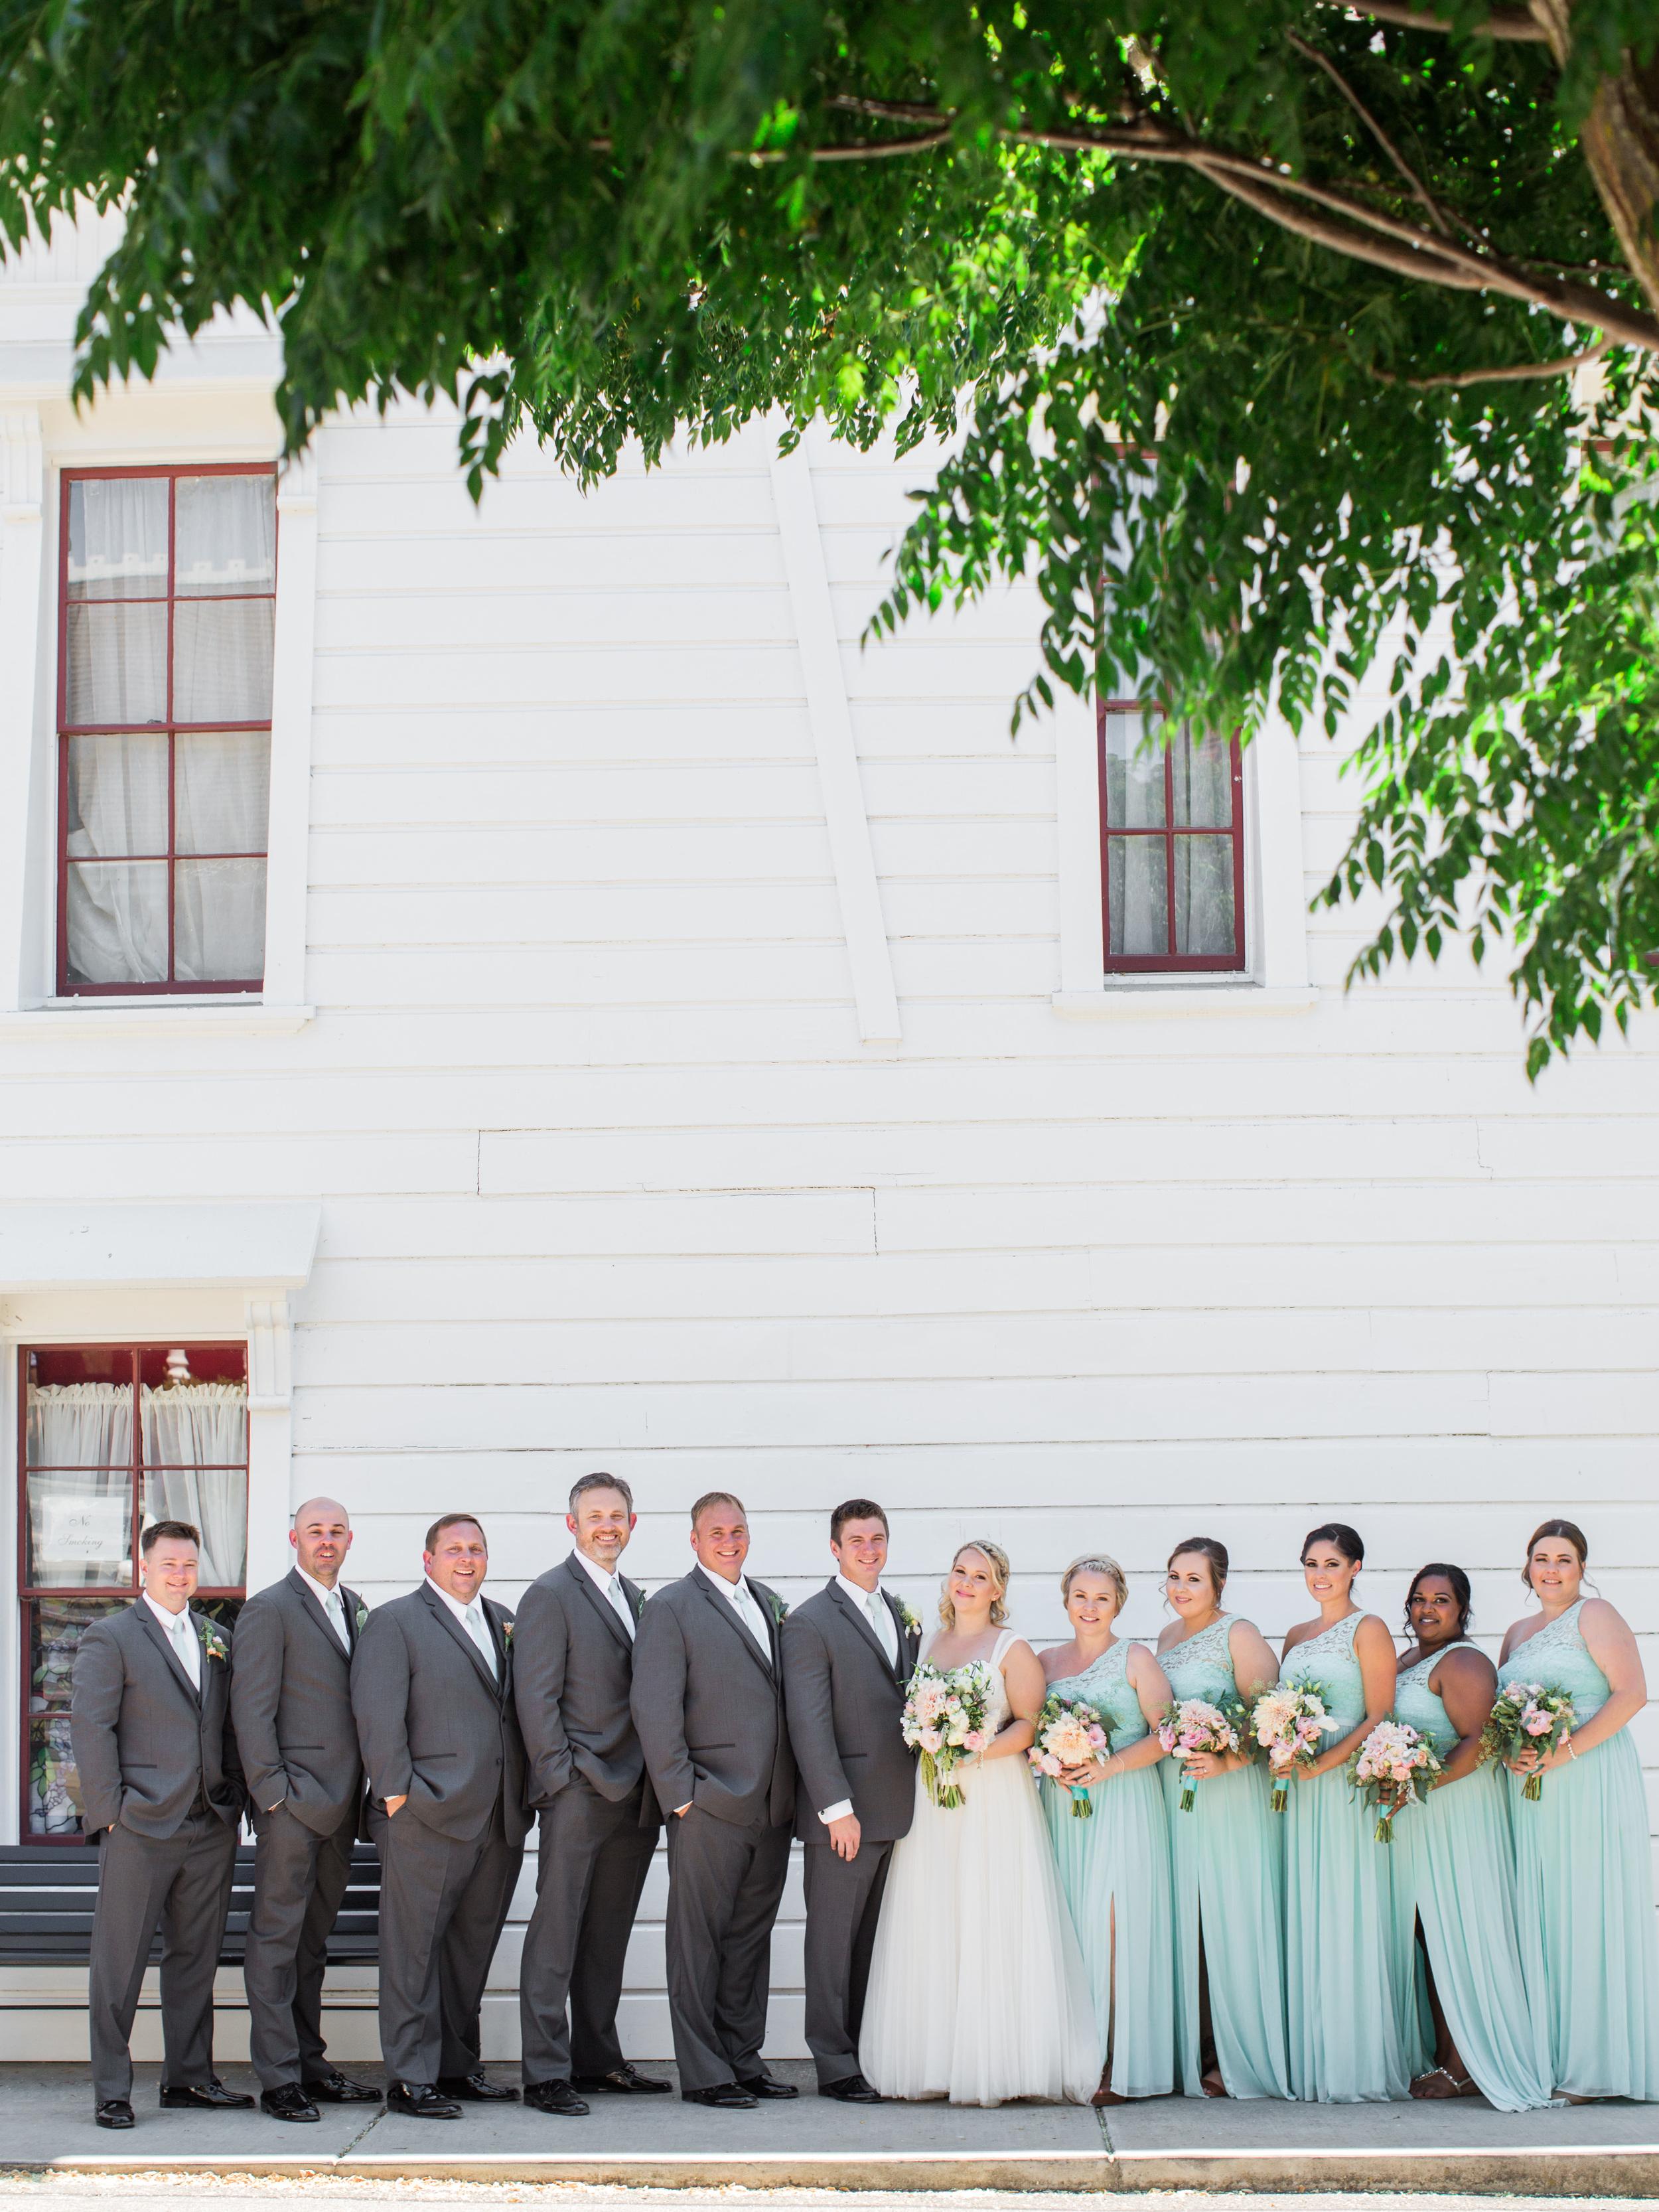 southern-inspired-wedding-at-ravenswood-historic-site-4928.jpg